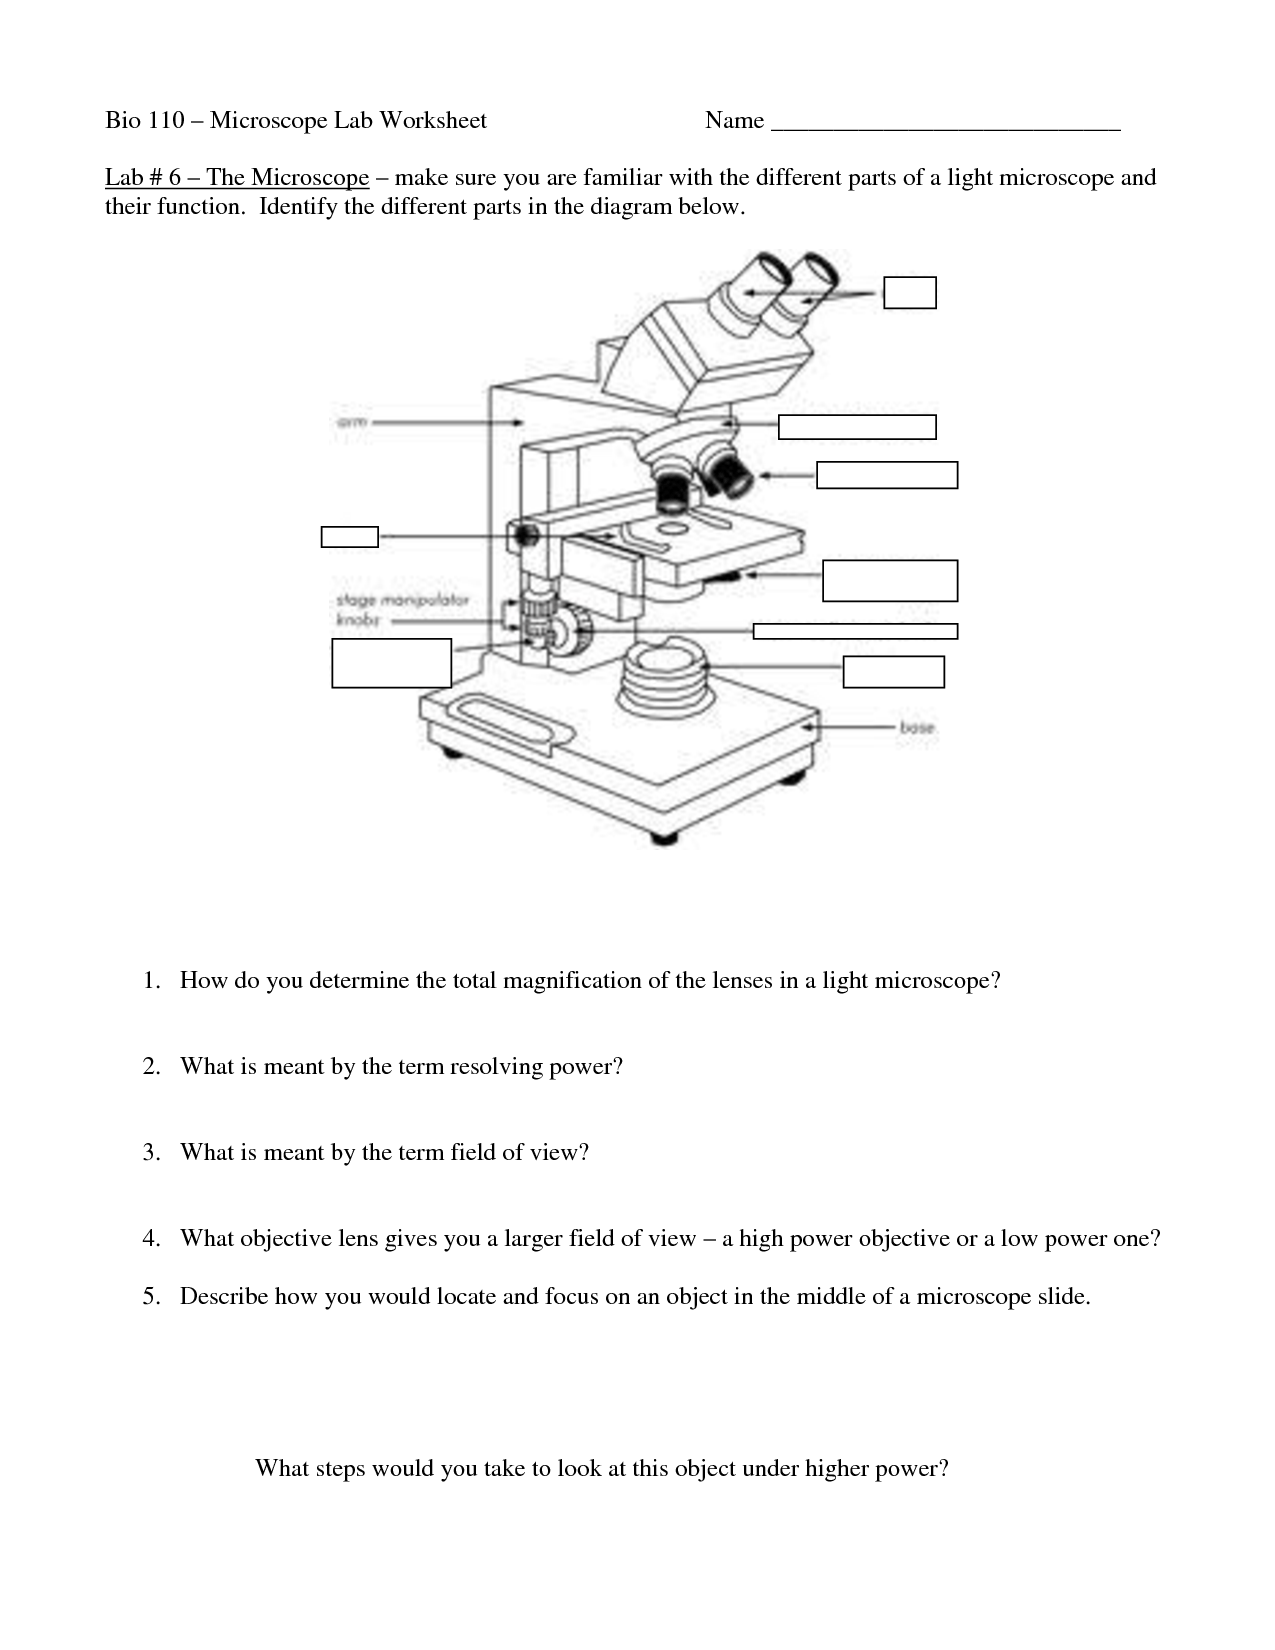 Field Of View Microscope Worksheet